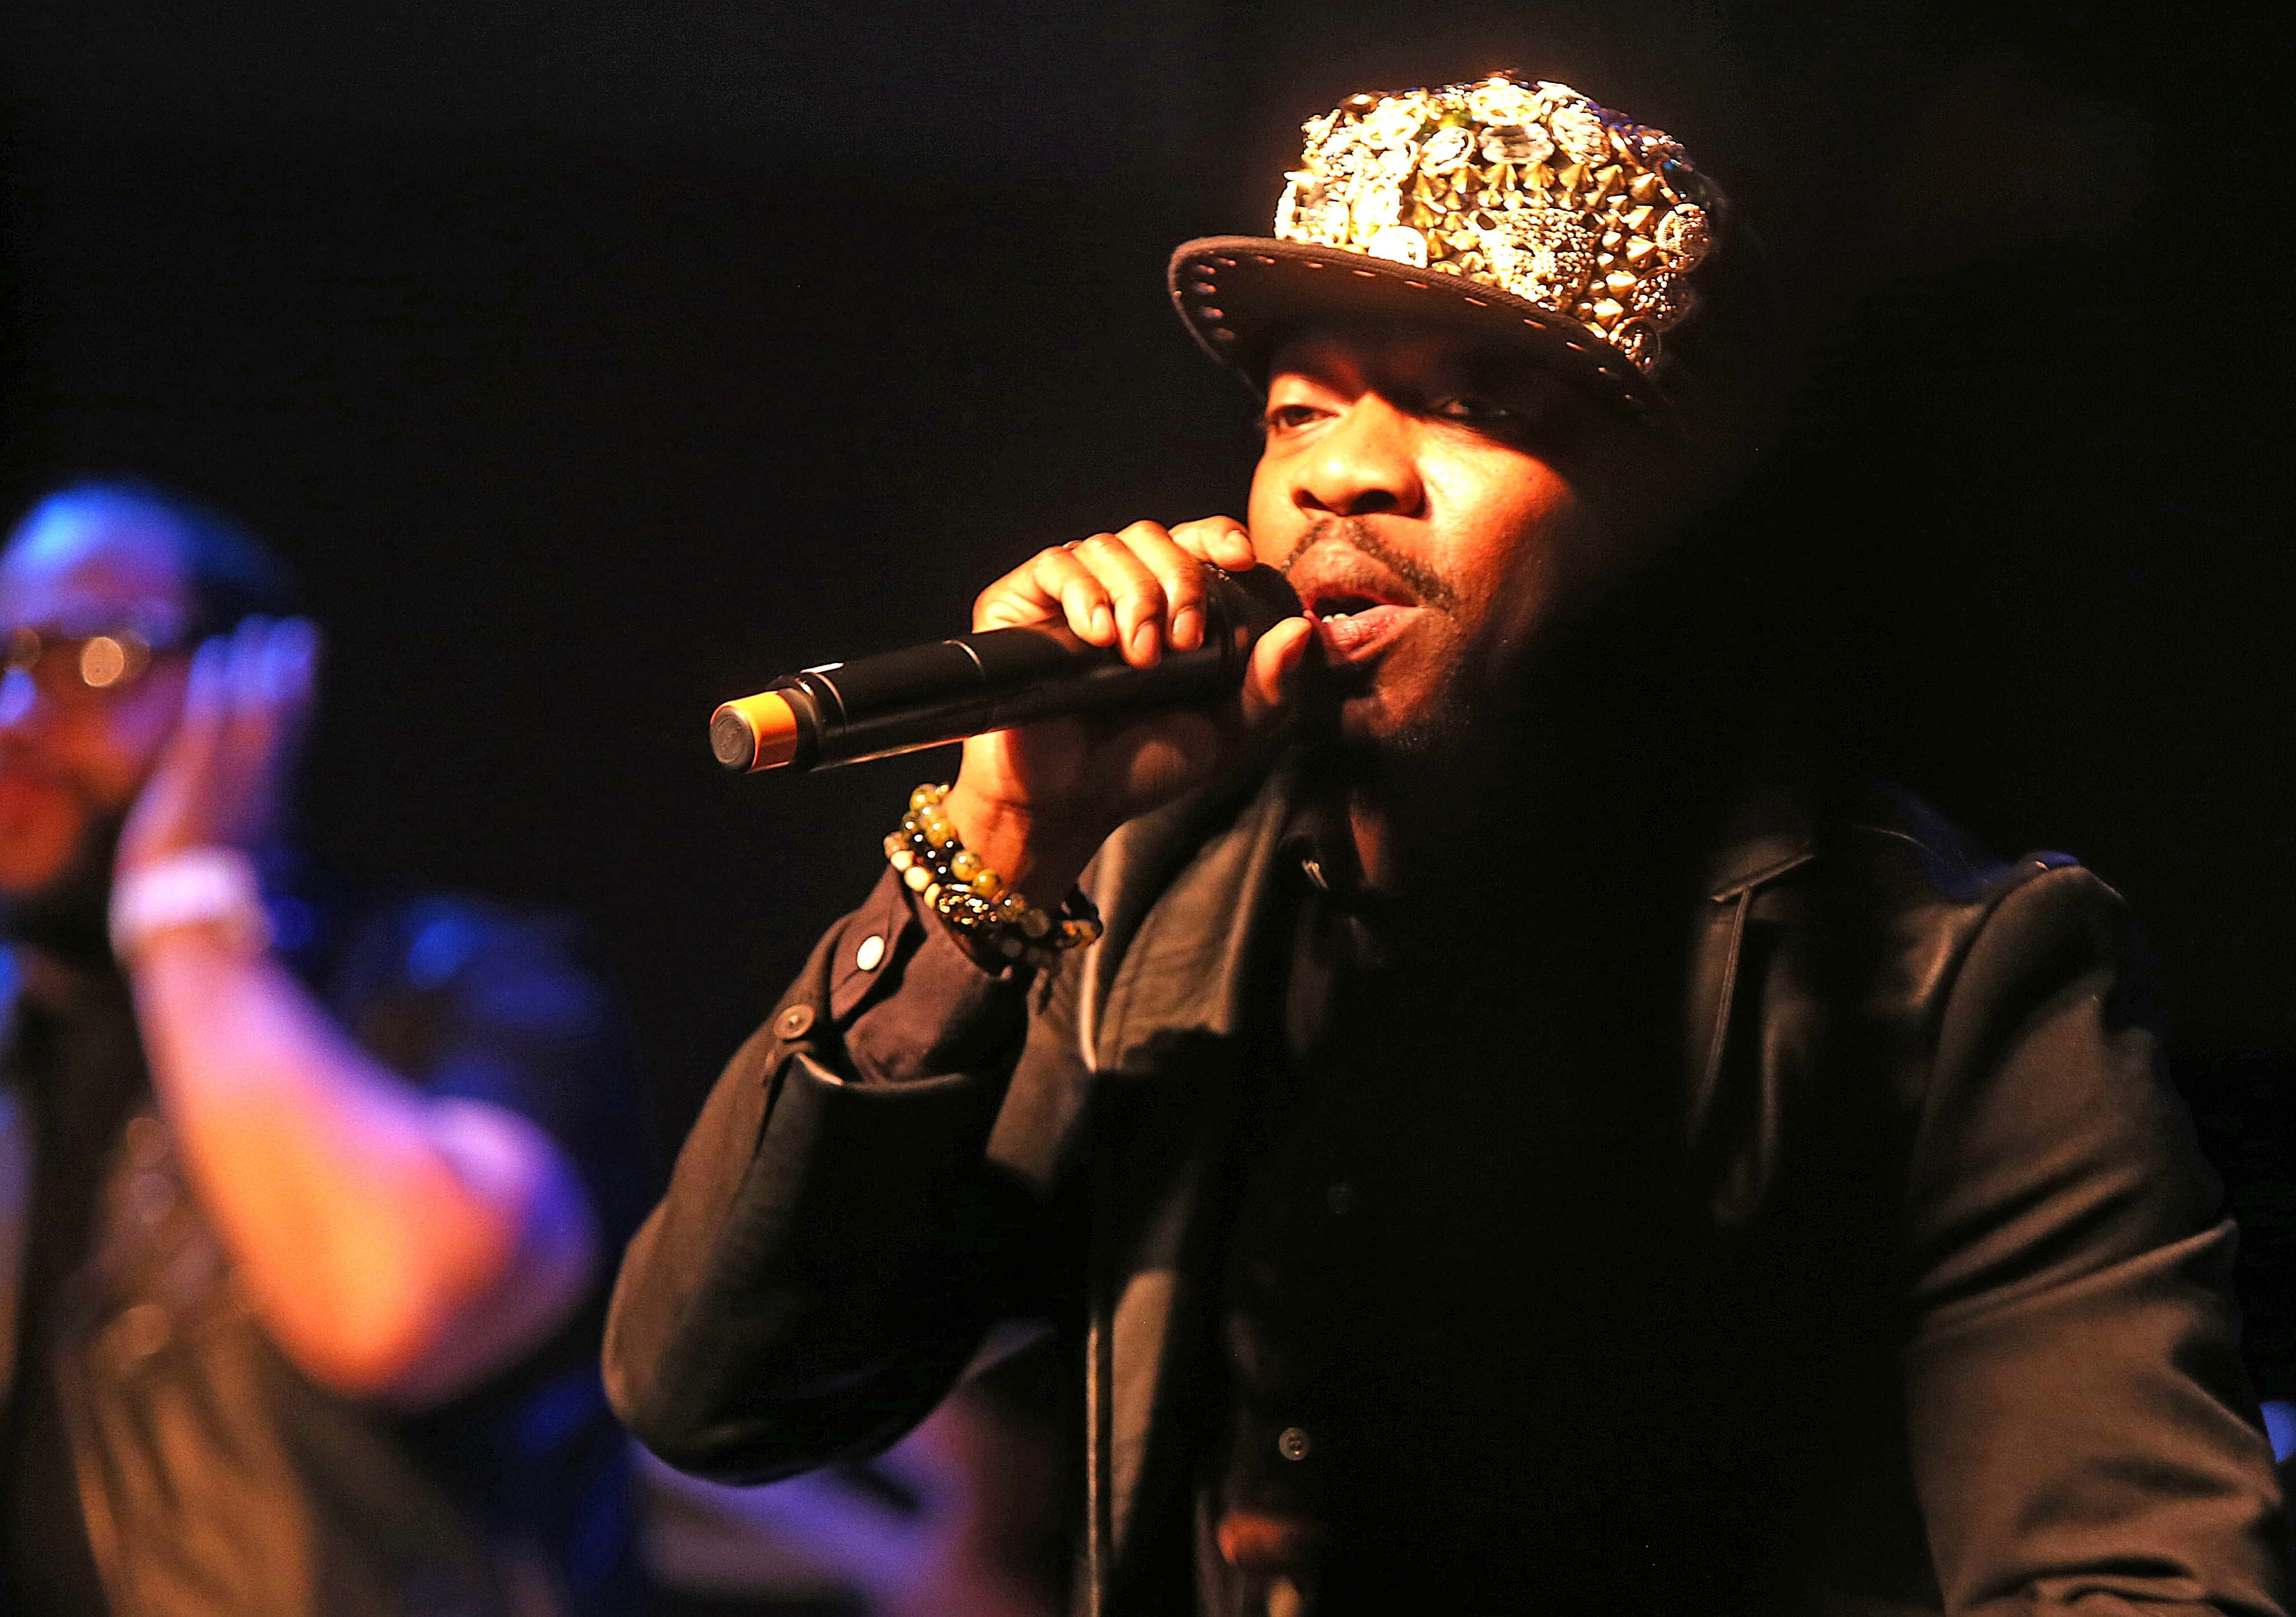 Anthony Hamilton wasn't afraid to share the spotlight with his five-piece band and four singers Friday night in a high-energy show at the Tralf.